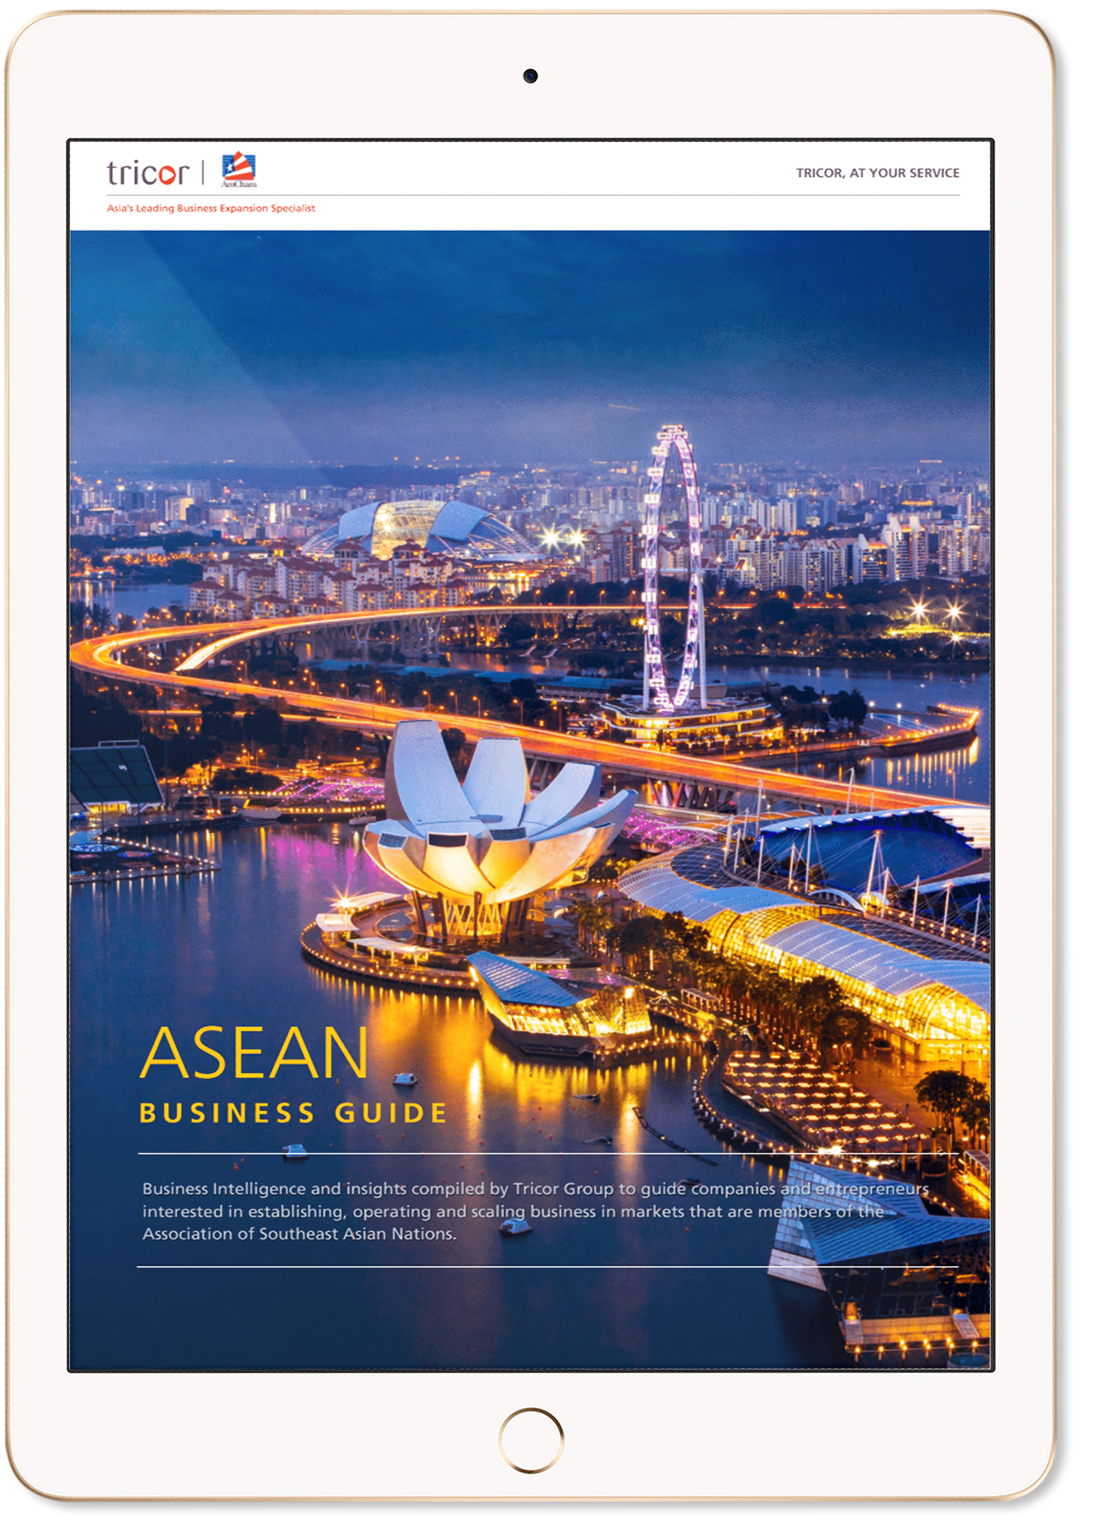 Doing business in ASEAN